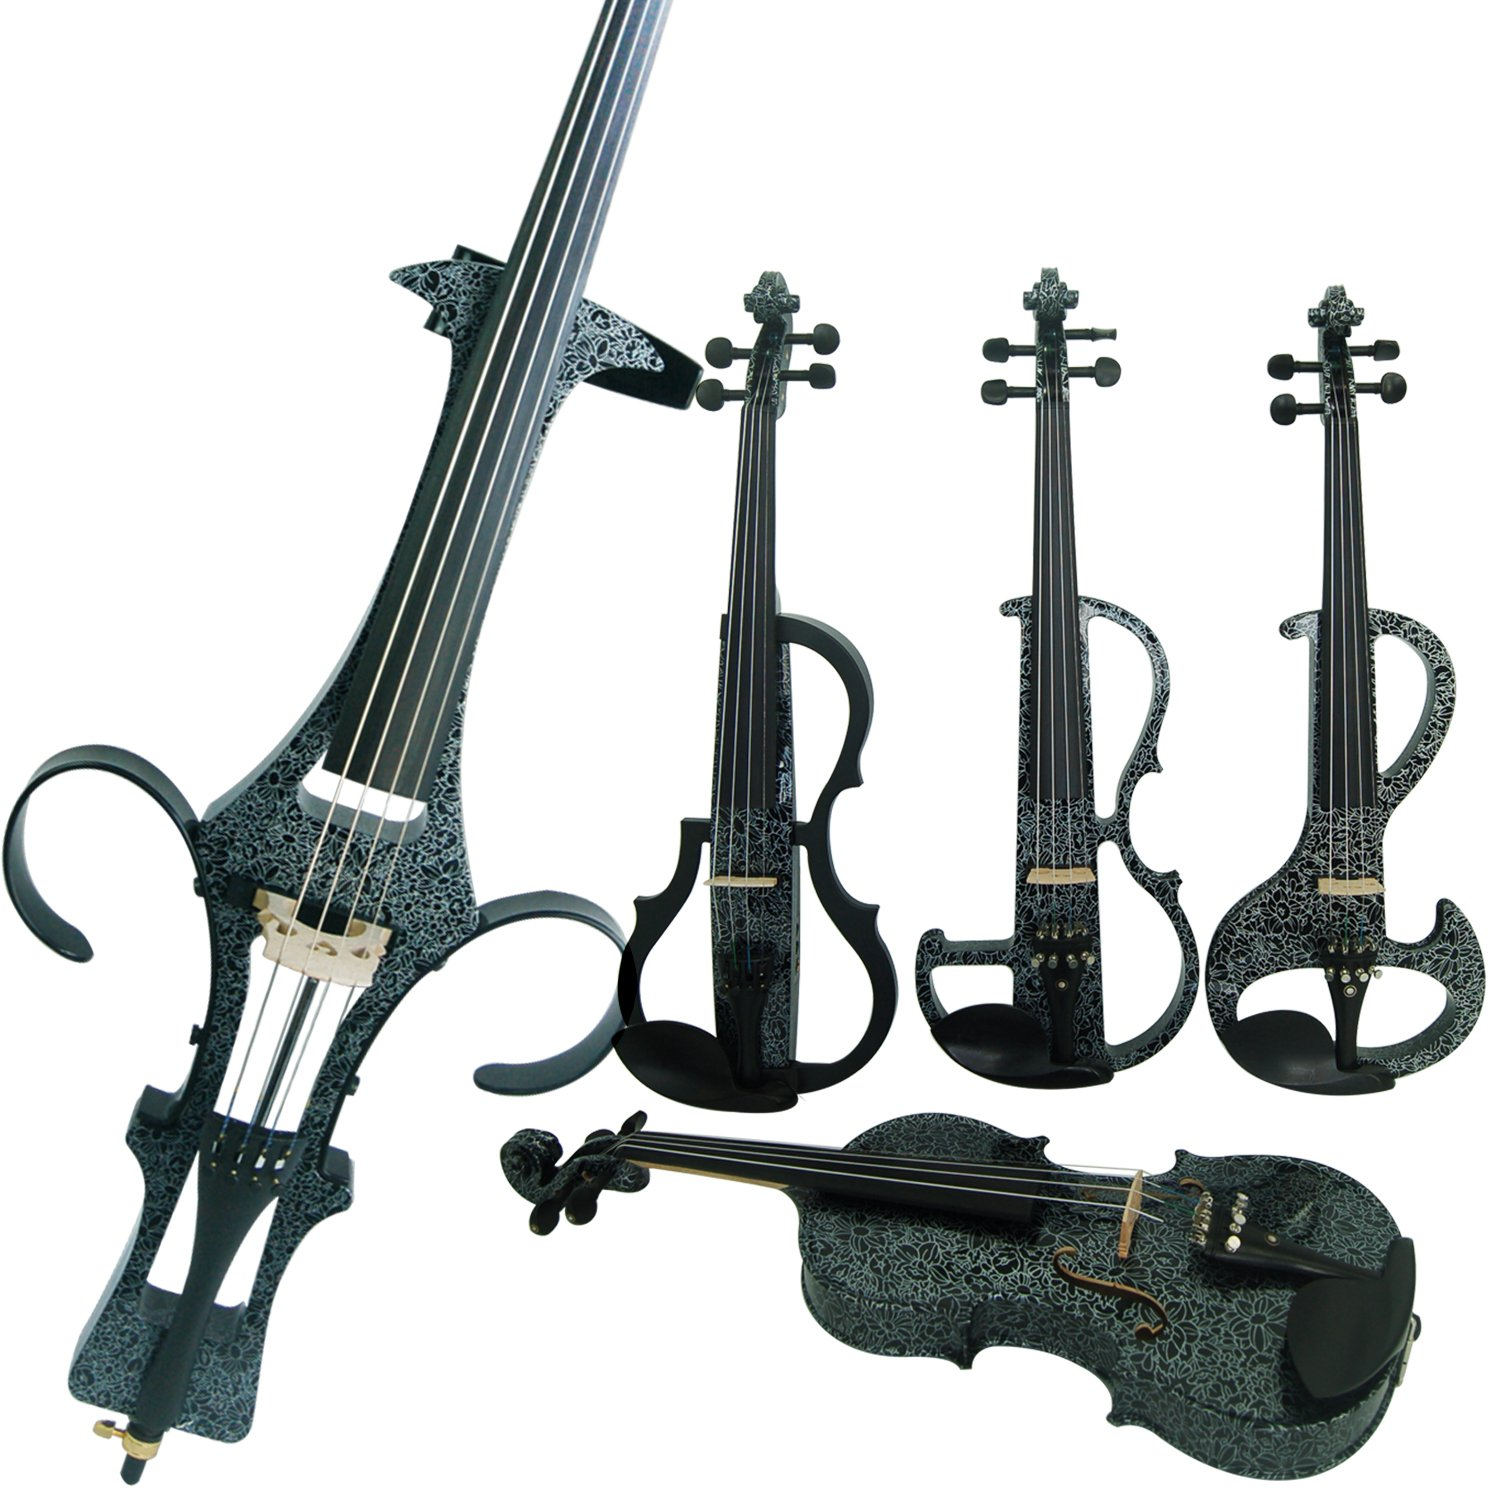 Leeche Premium 4/4 Full Size Solid Wood Electric Cello Violoncello Maple Solid Wood body Ebony Fittings with Bag, Bow, Rosin, Aux Cable, Earphone, Extra set of Strings(Art White Flowers) by leeche